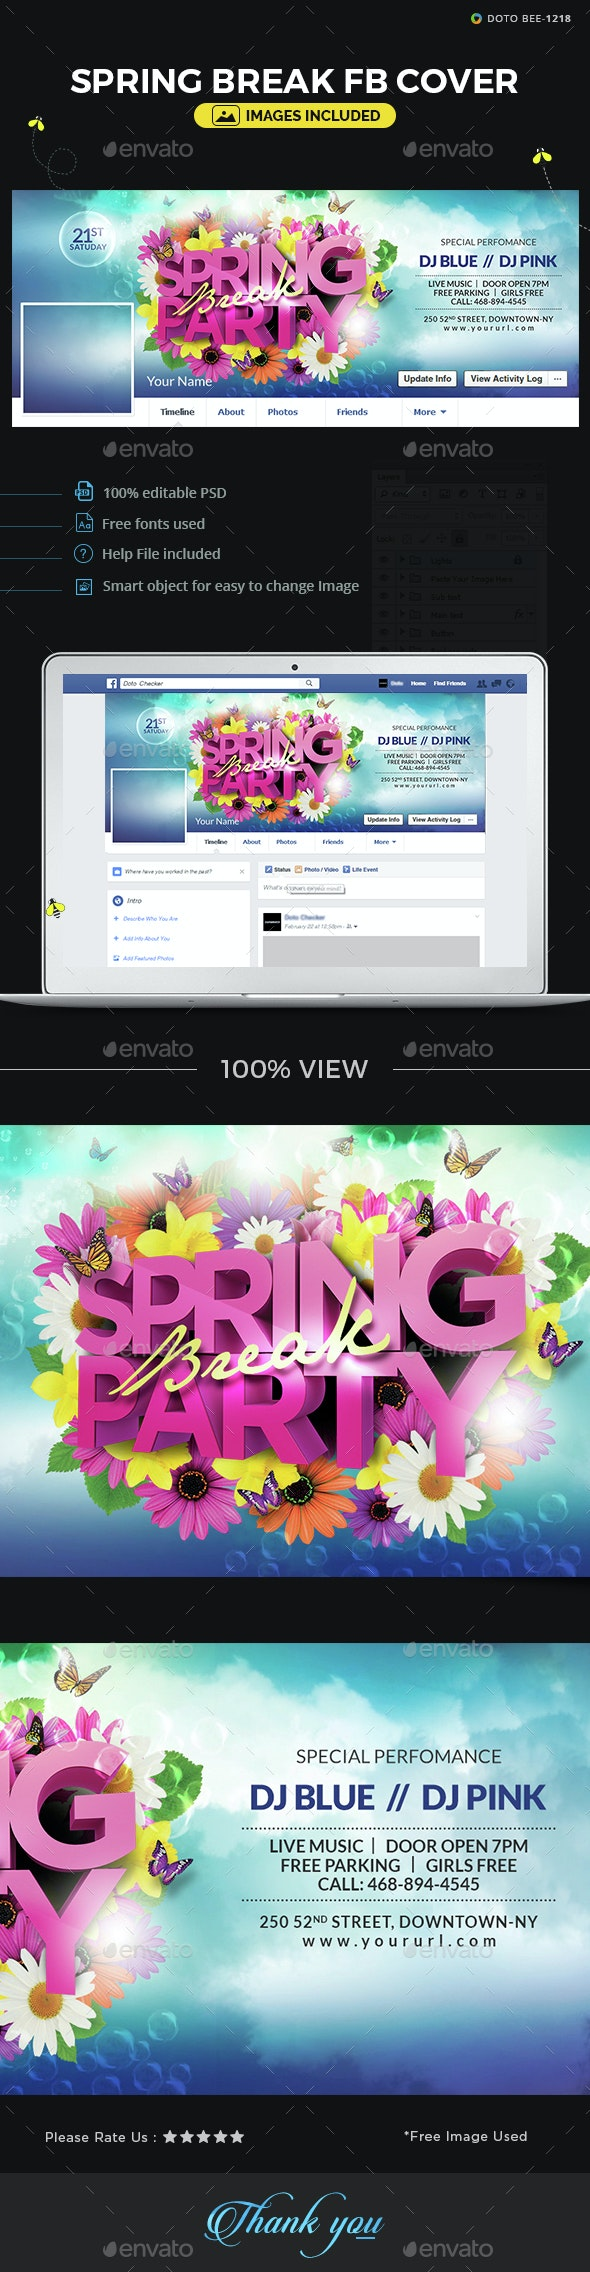 Spring Break Facebook Cover - Facebook Timeline Covers Social Media